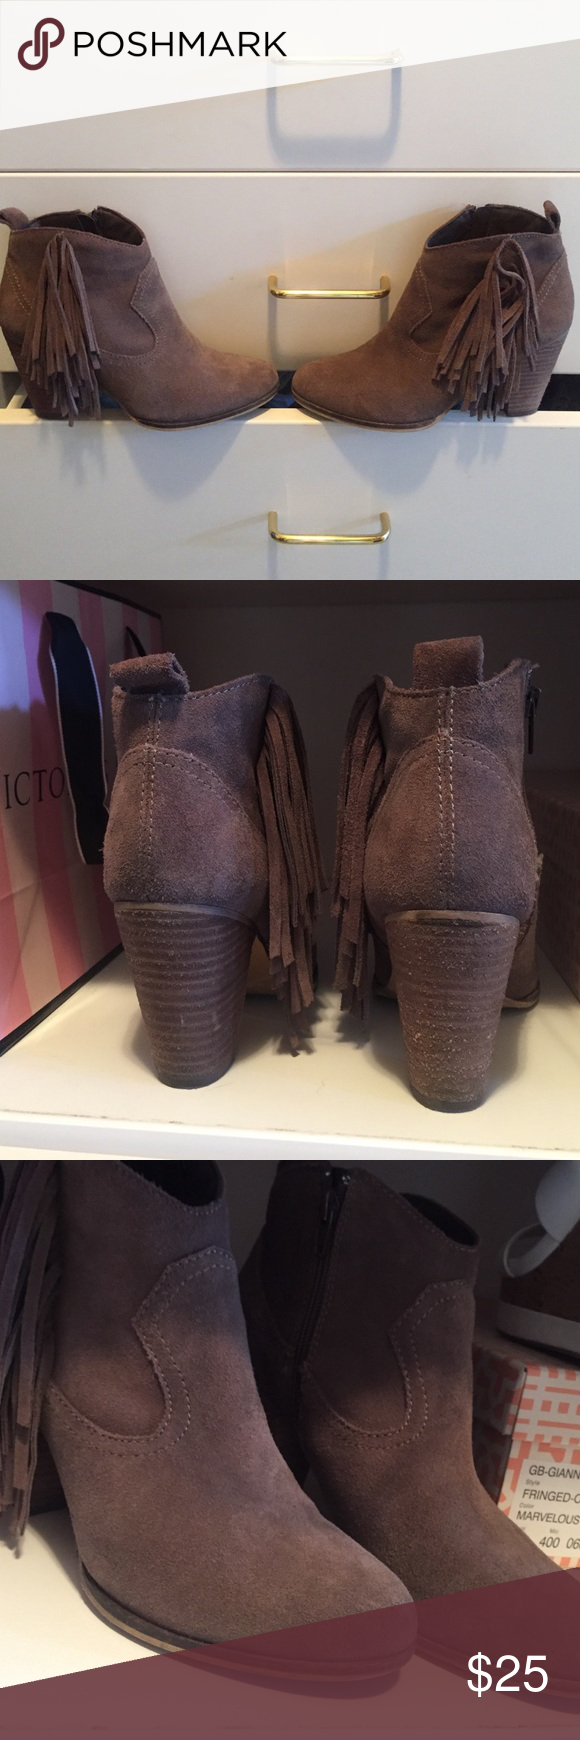 Steve Madden Booties Size 6 Steve Madden Booties. Has a little dirt on back heel but can wipe clean with suede cleaner. Steve Madden Shoes Ankle Boots & Booties